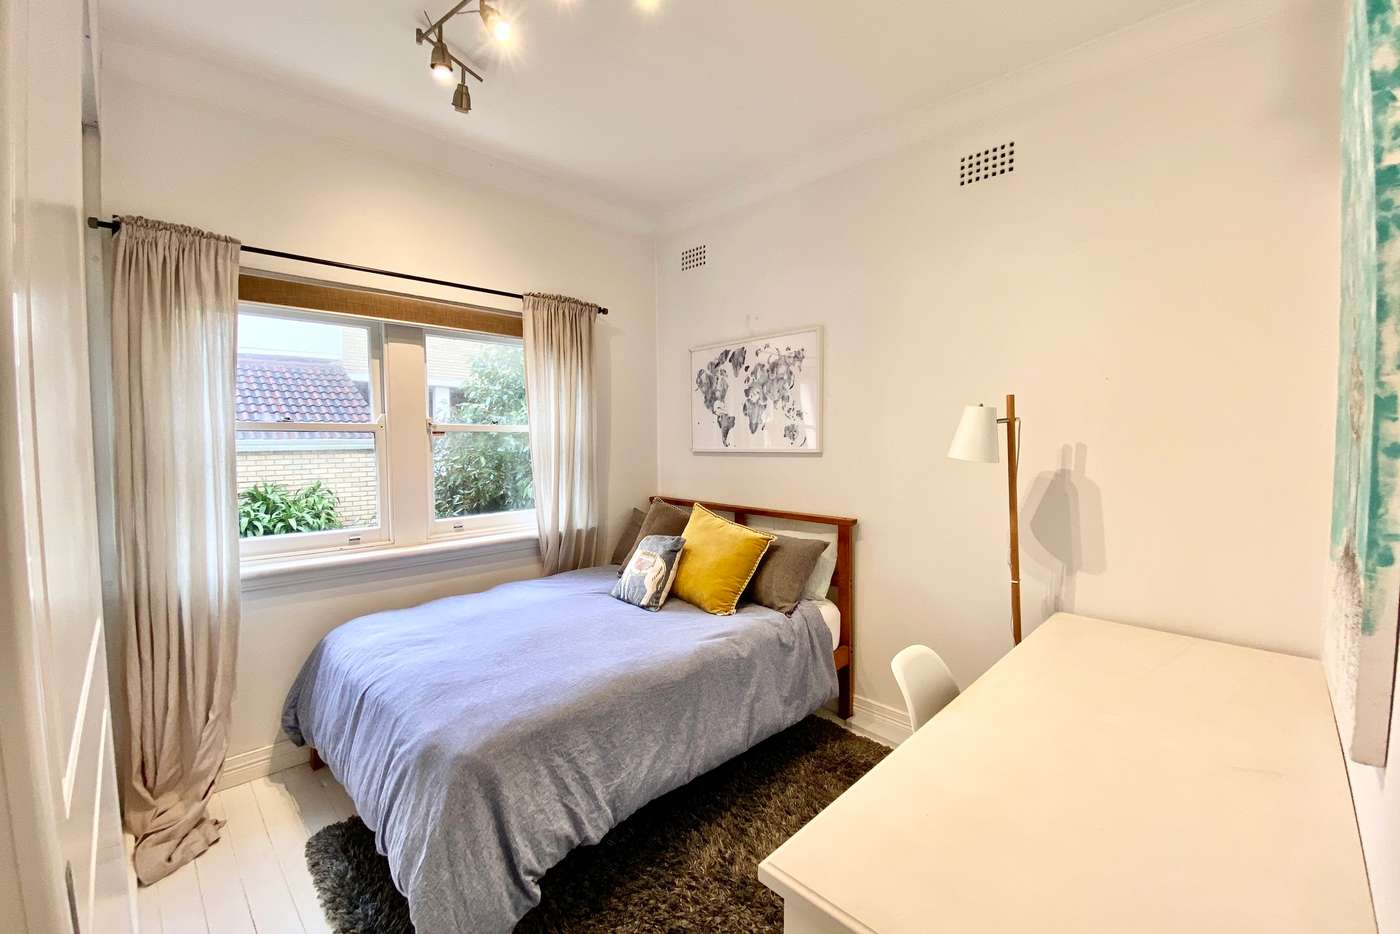 Seventh view of Homely apartment listing, 3/159 Malabar Road, South Coogee NSW 2034